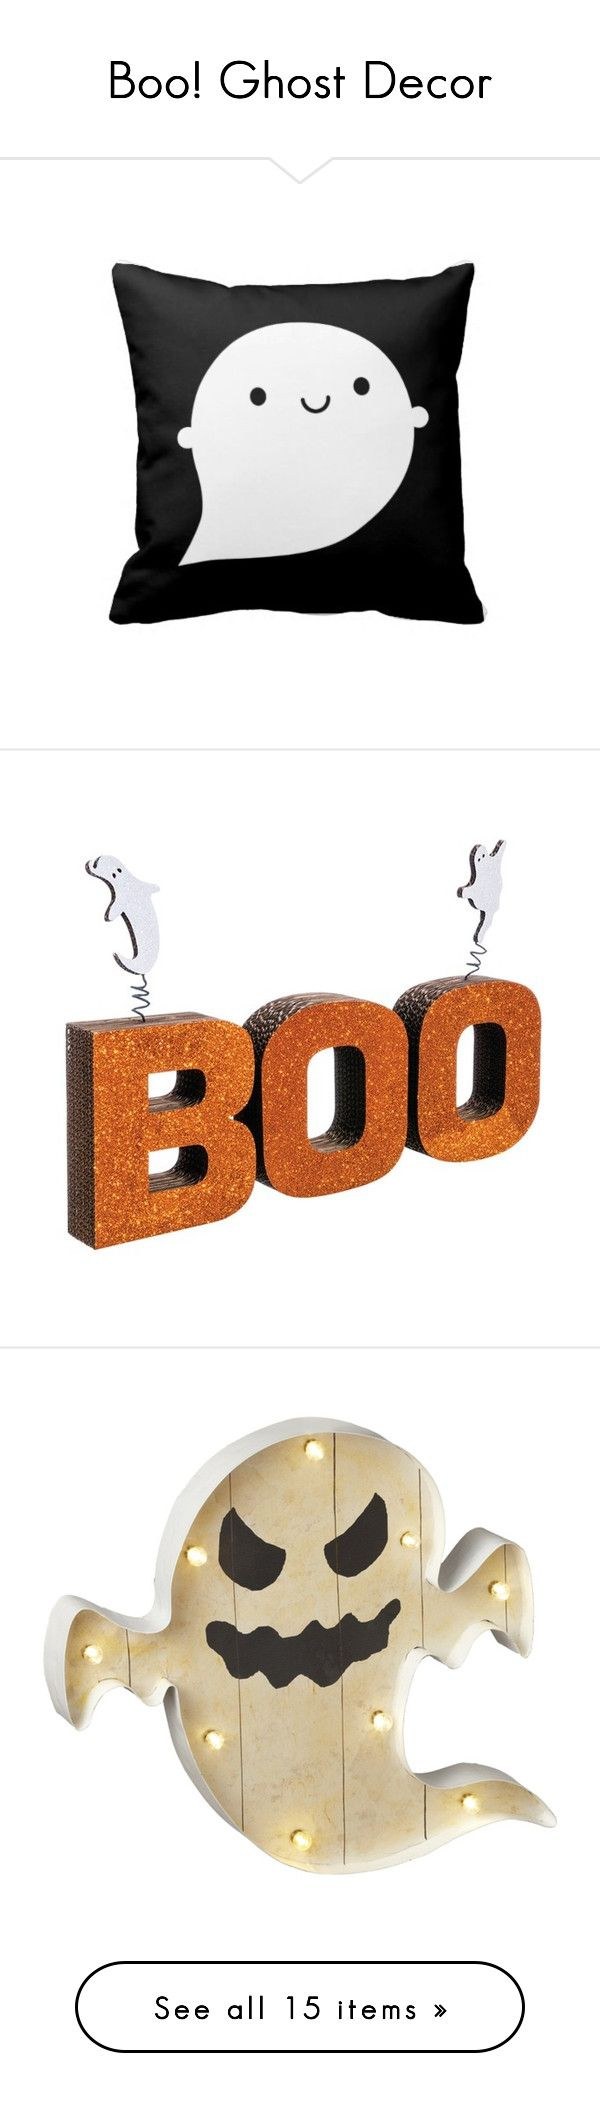 """""""Boo! Ghost Decor"""" by polyvore-editorial ❤ liked on Polyvore featuring ghostdecor, home, home decor, holiday decorations, haunted, orange, halloween home decor, orange home decor, spring home decor and white"""